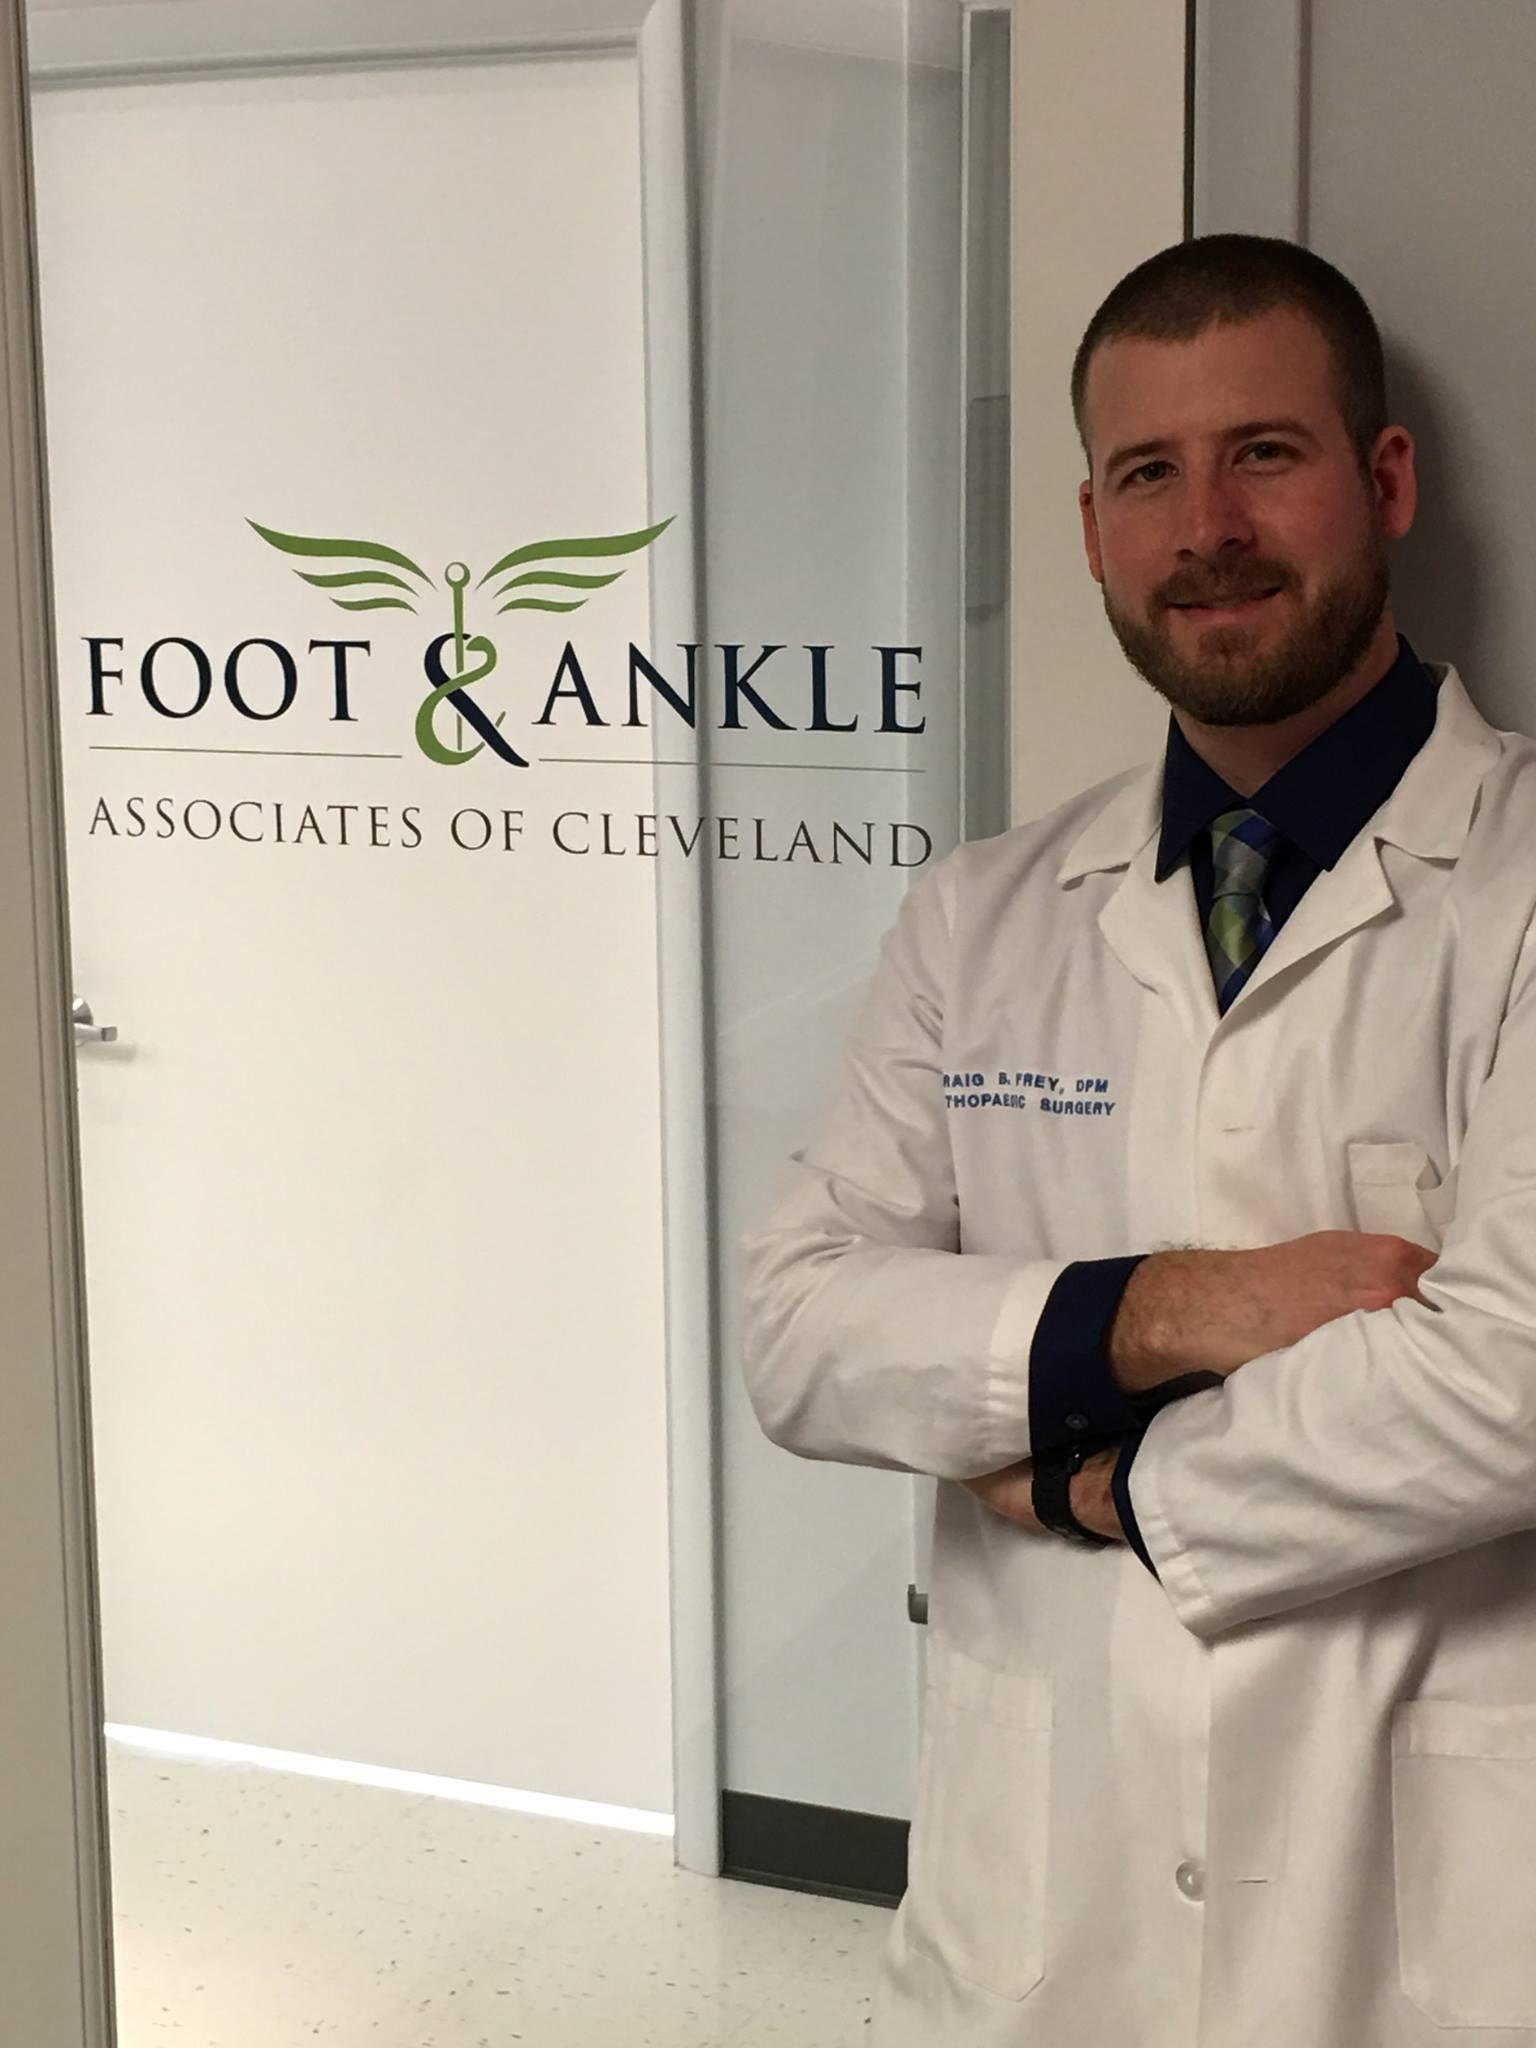 Foot & Ankle Associates of Cleveland image 3